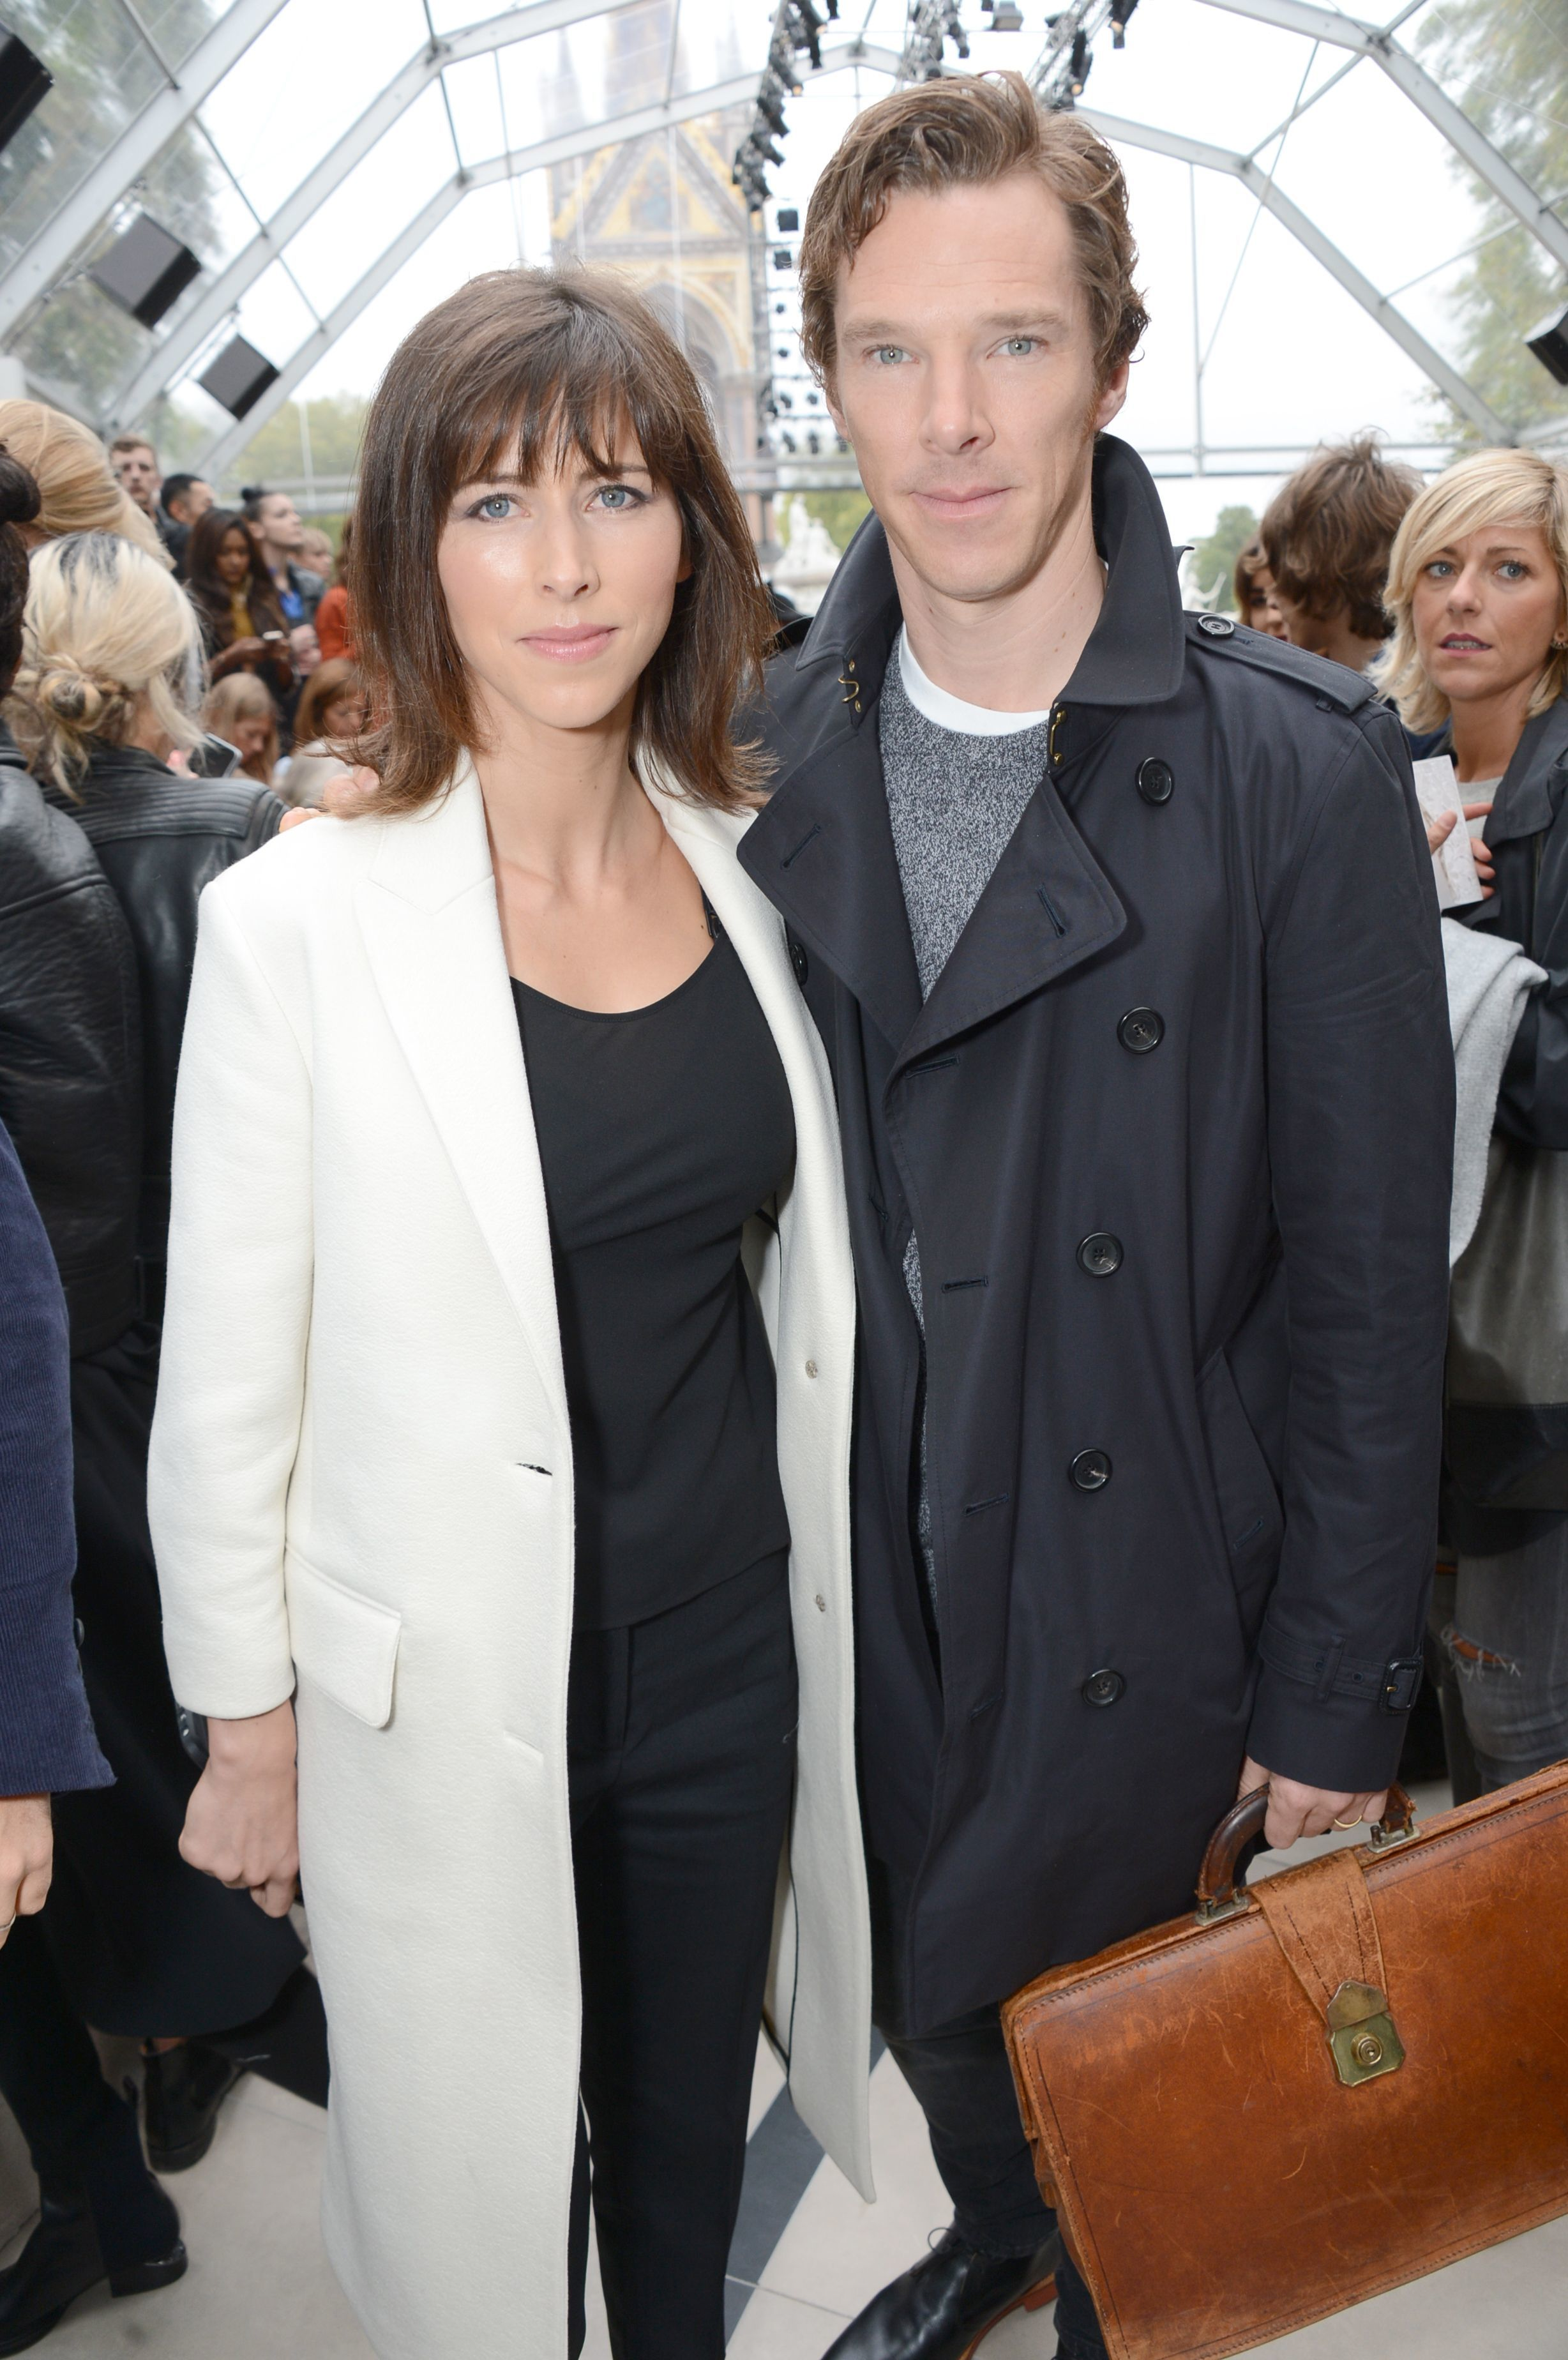 Pregnancy buzz hits Benedict Cumberbatch's wife, Sophie Hunter